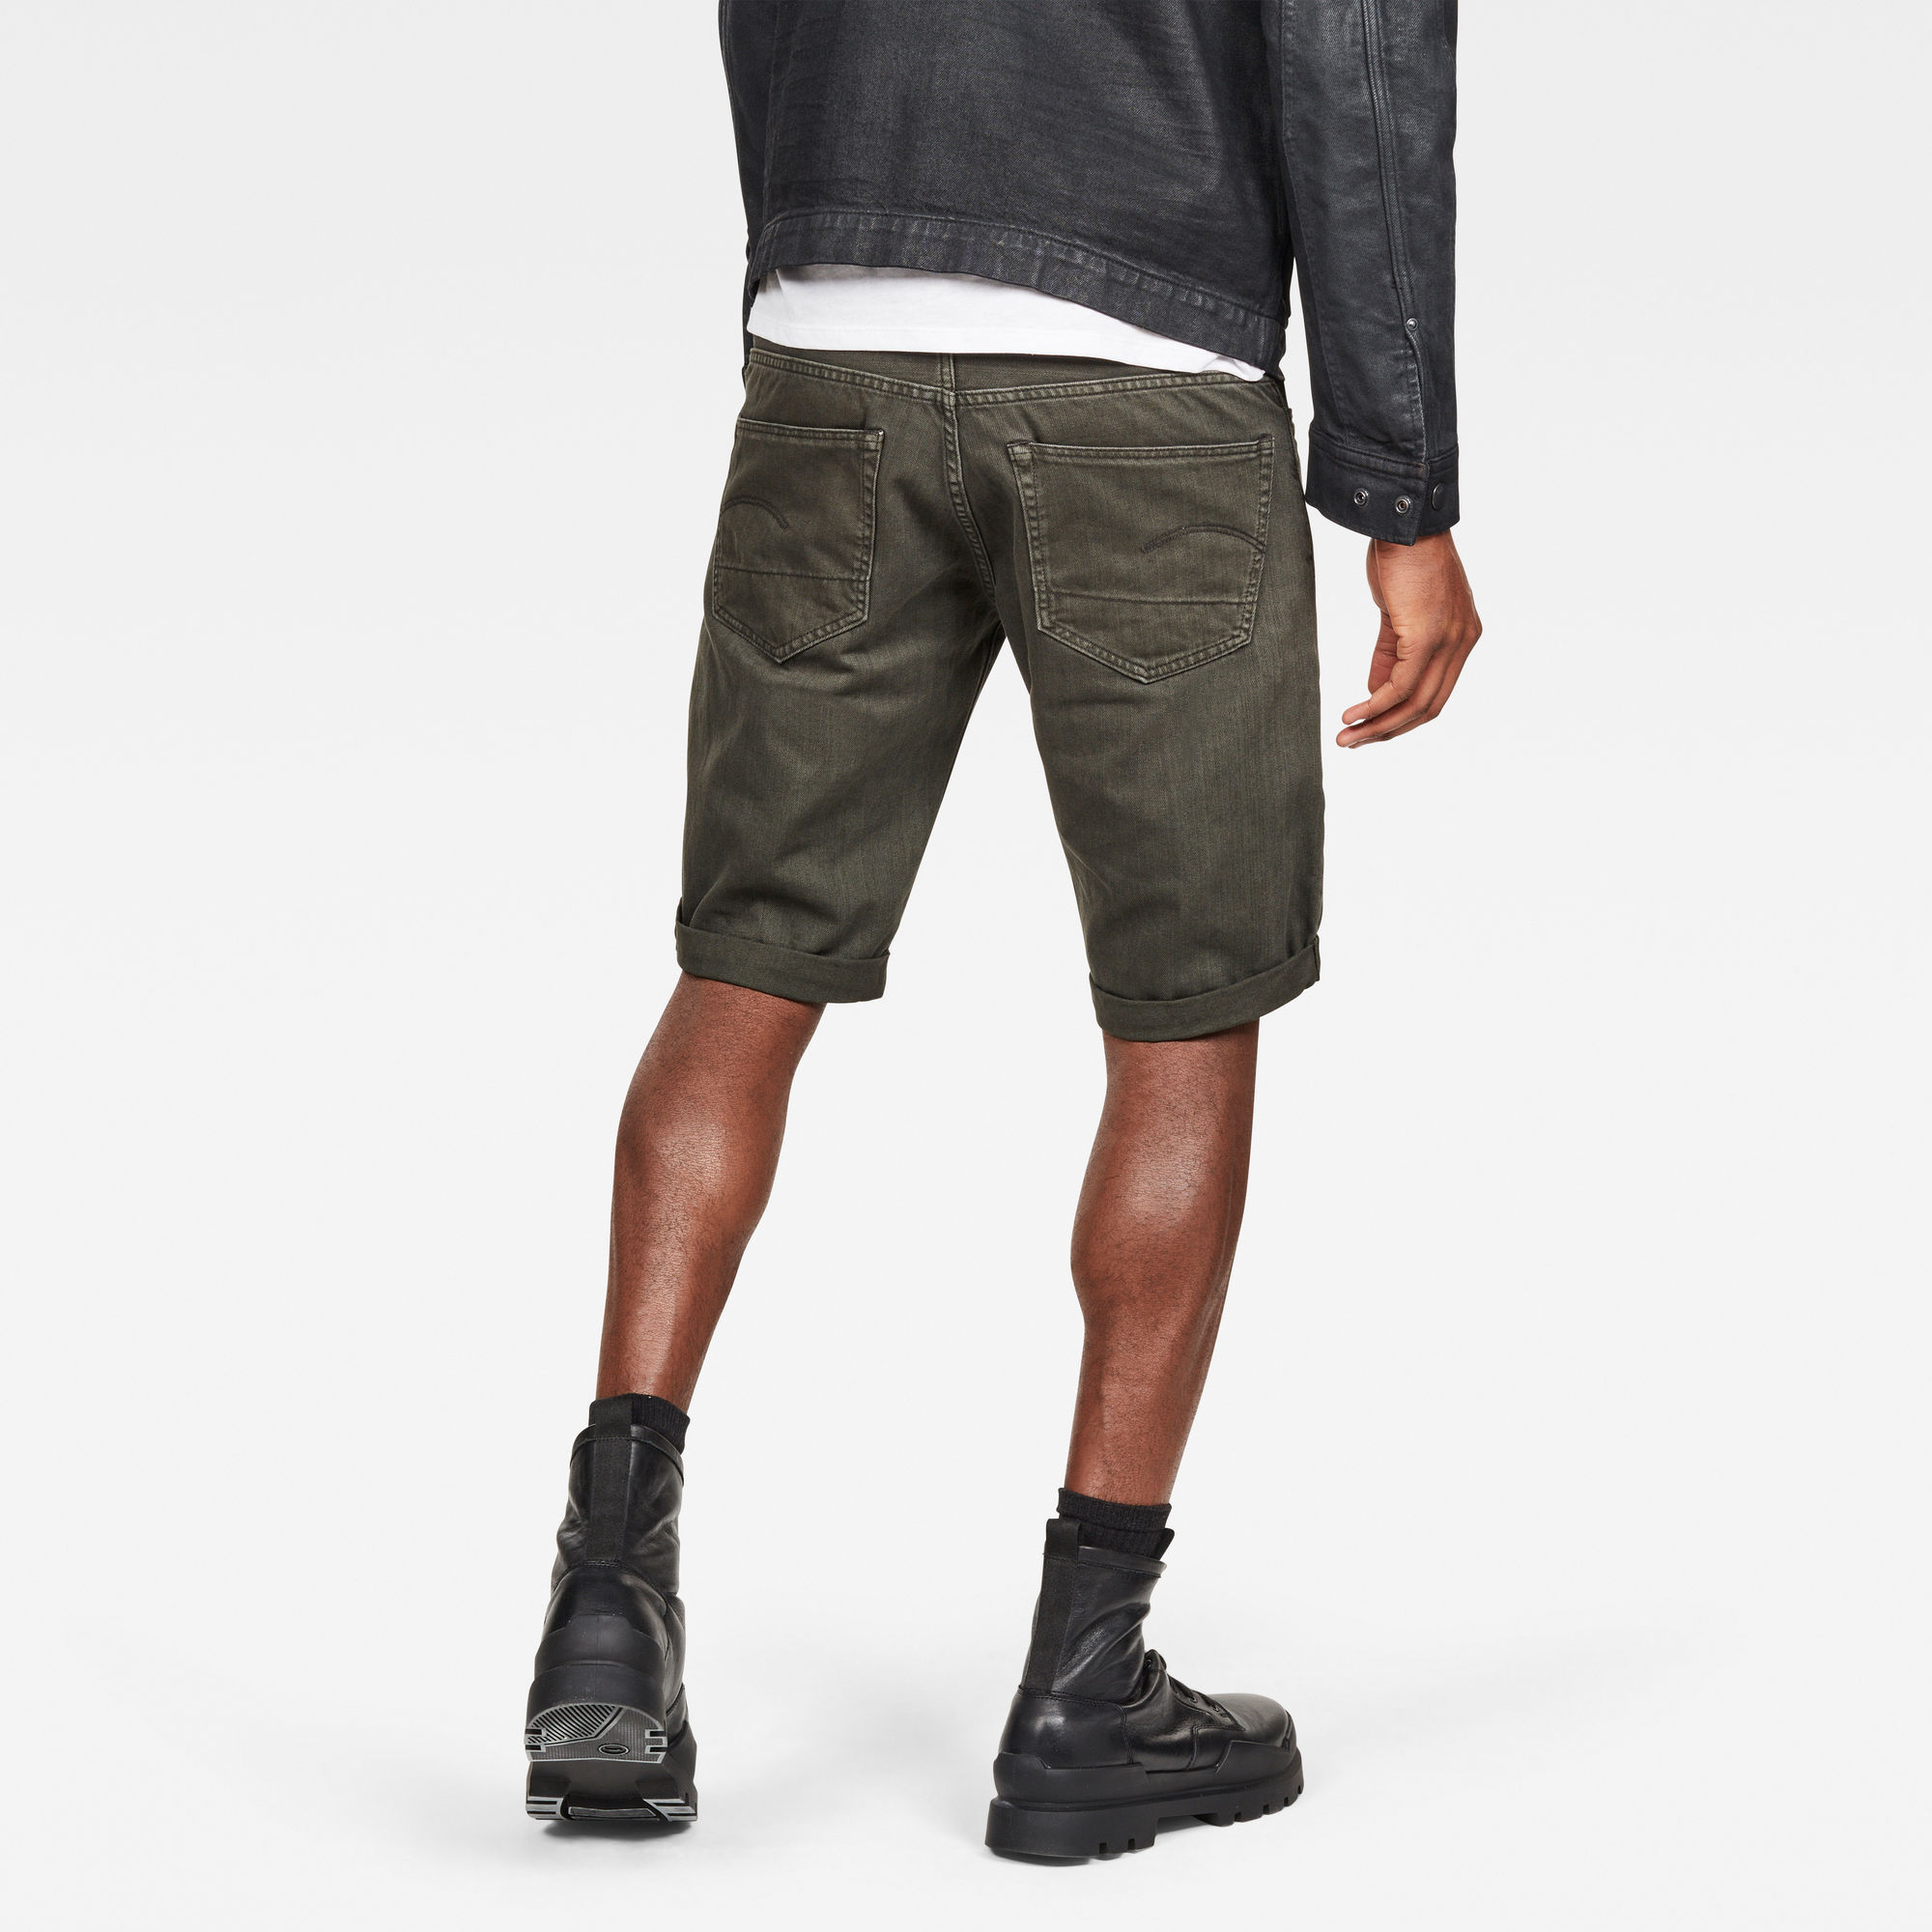 G-Star RAW 33301 Short